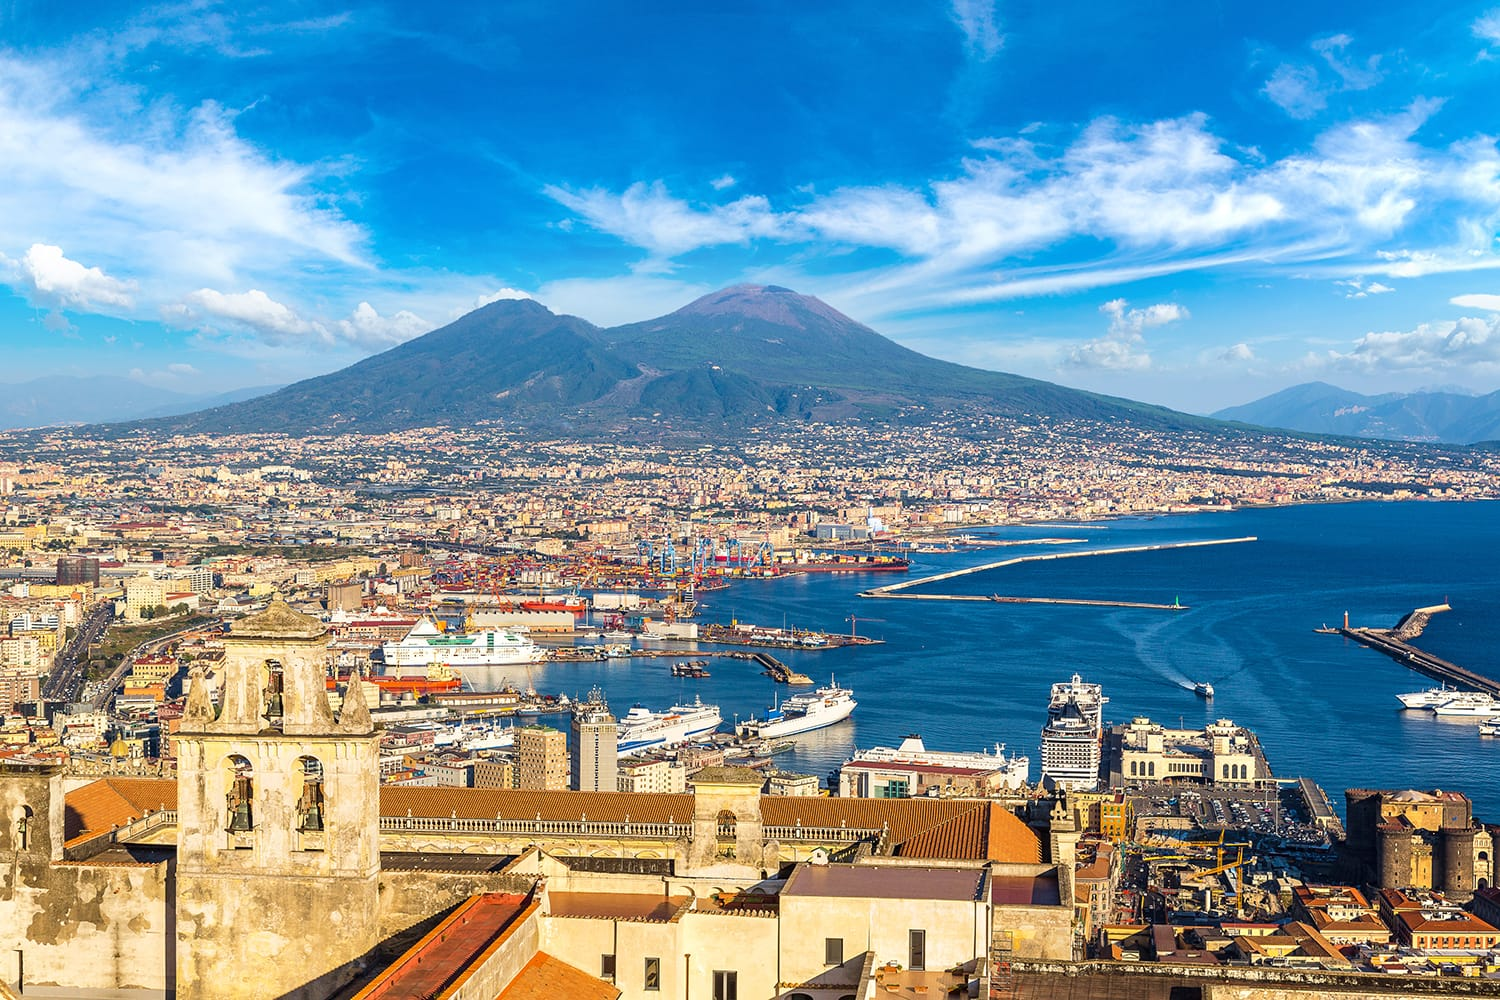 Napoli (Naples) and mount Vesuvius in the background at sunset in a summer day, Italy